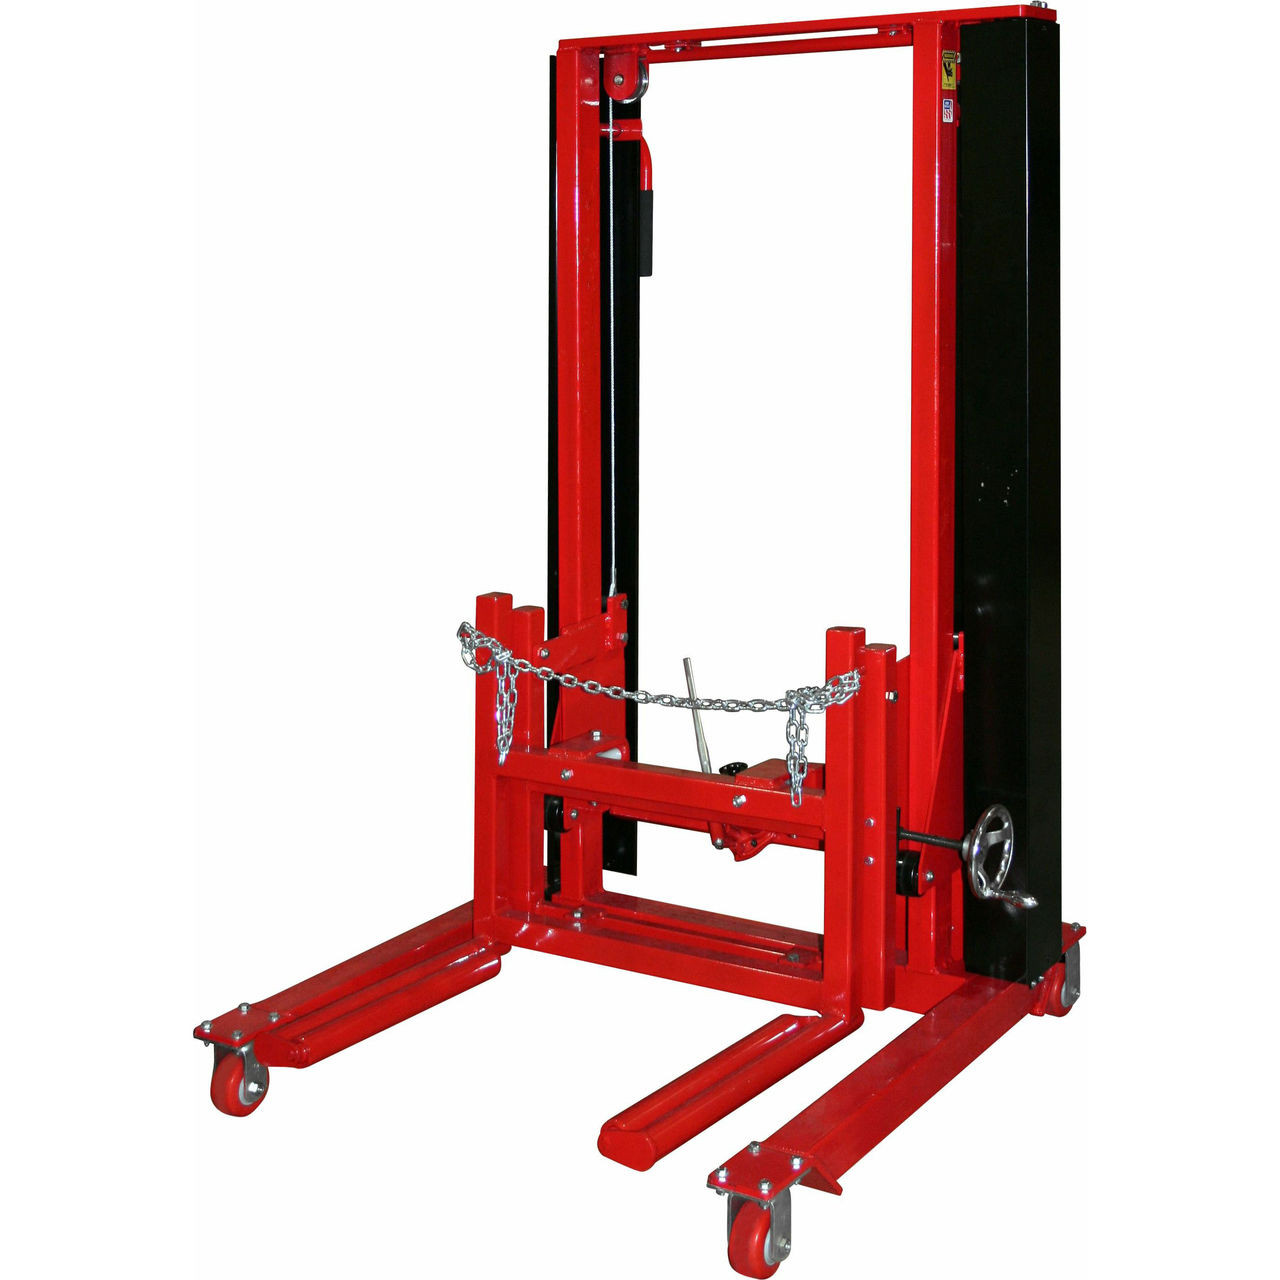 Norco Professional Lifting Equipment 81035A Heavy Duty 1-1//2 Ton Capacity Under Hoist Stand